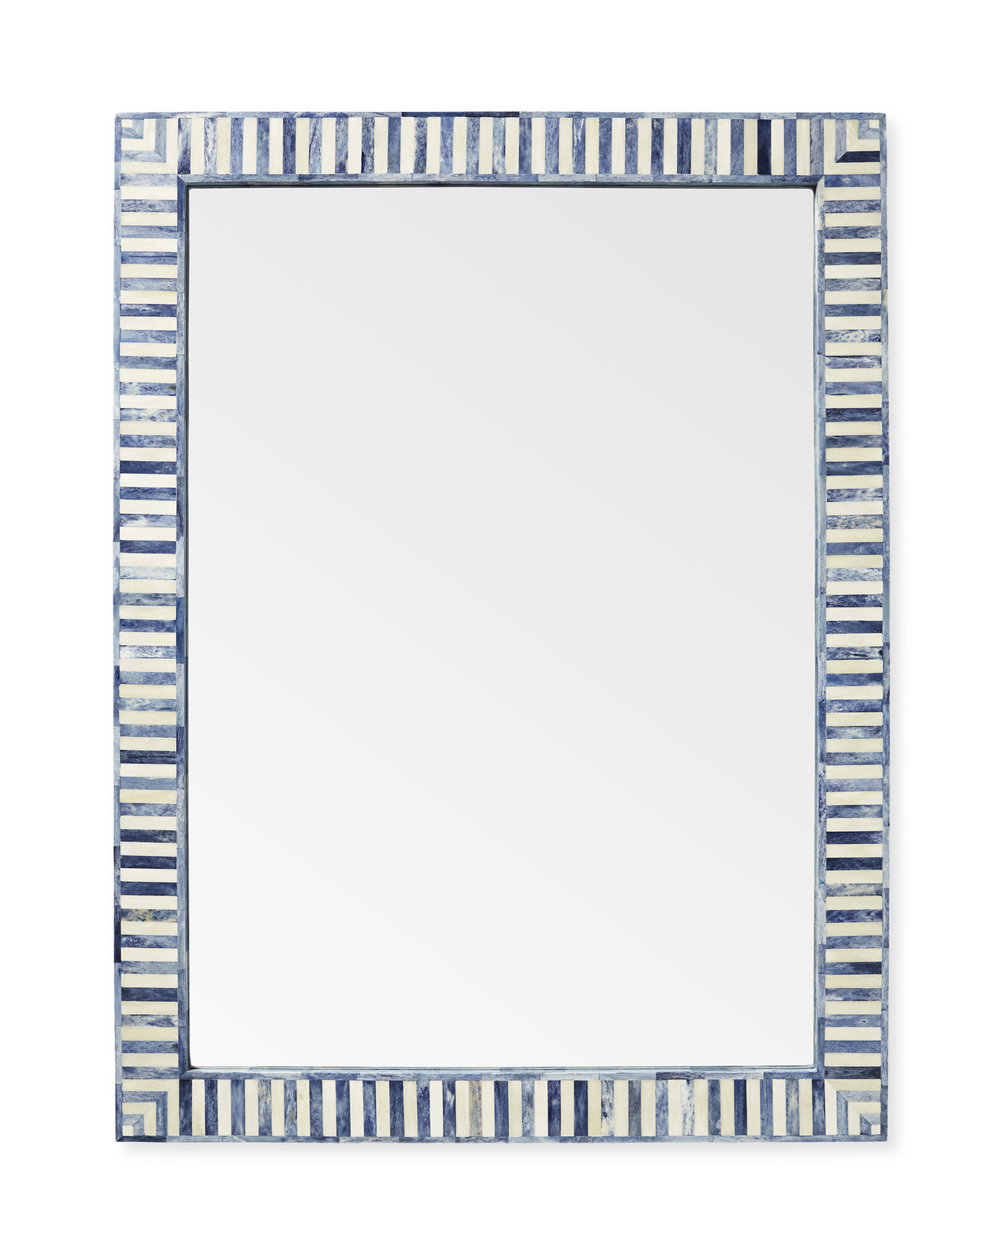 Mirror_Striped_Bone_Inlay_Large_Blue_MV_0421_Crop_SH.jpg